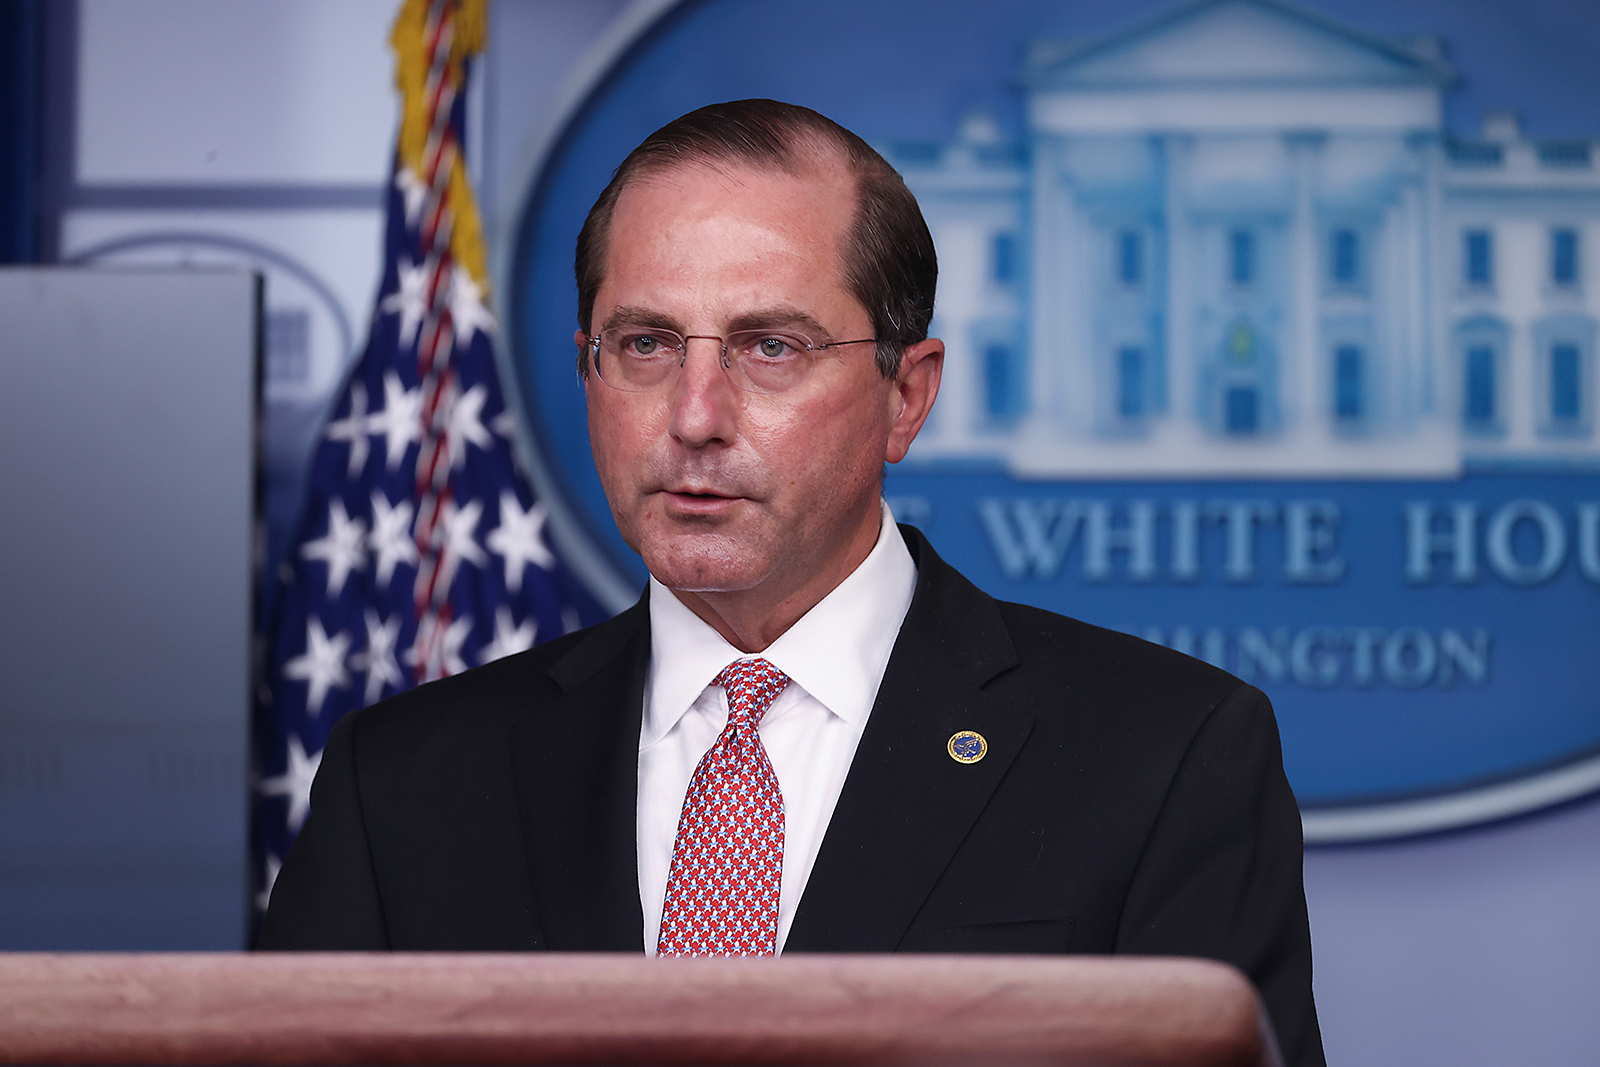 US Secretary of Health and Human Services Alex Azar speaks during a White House Coronavirus Task Force press briefing at the White House in Washington, DC, on November 19.